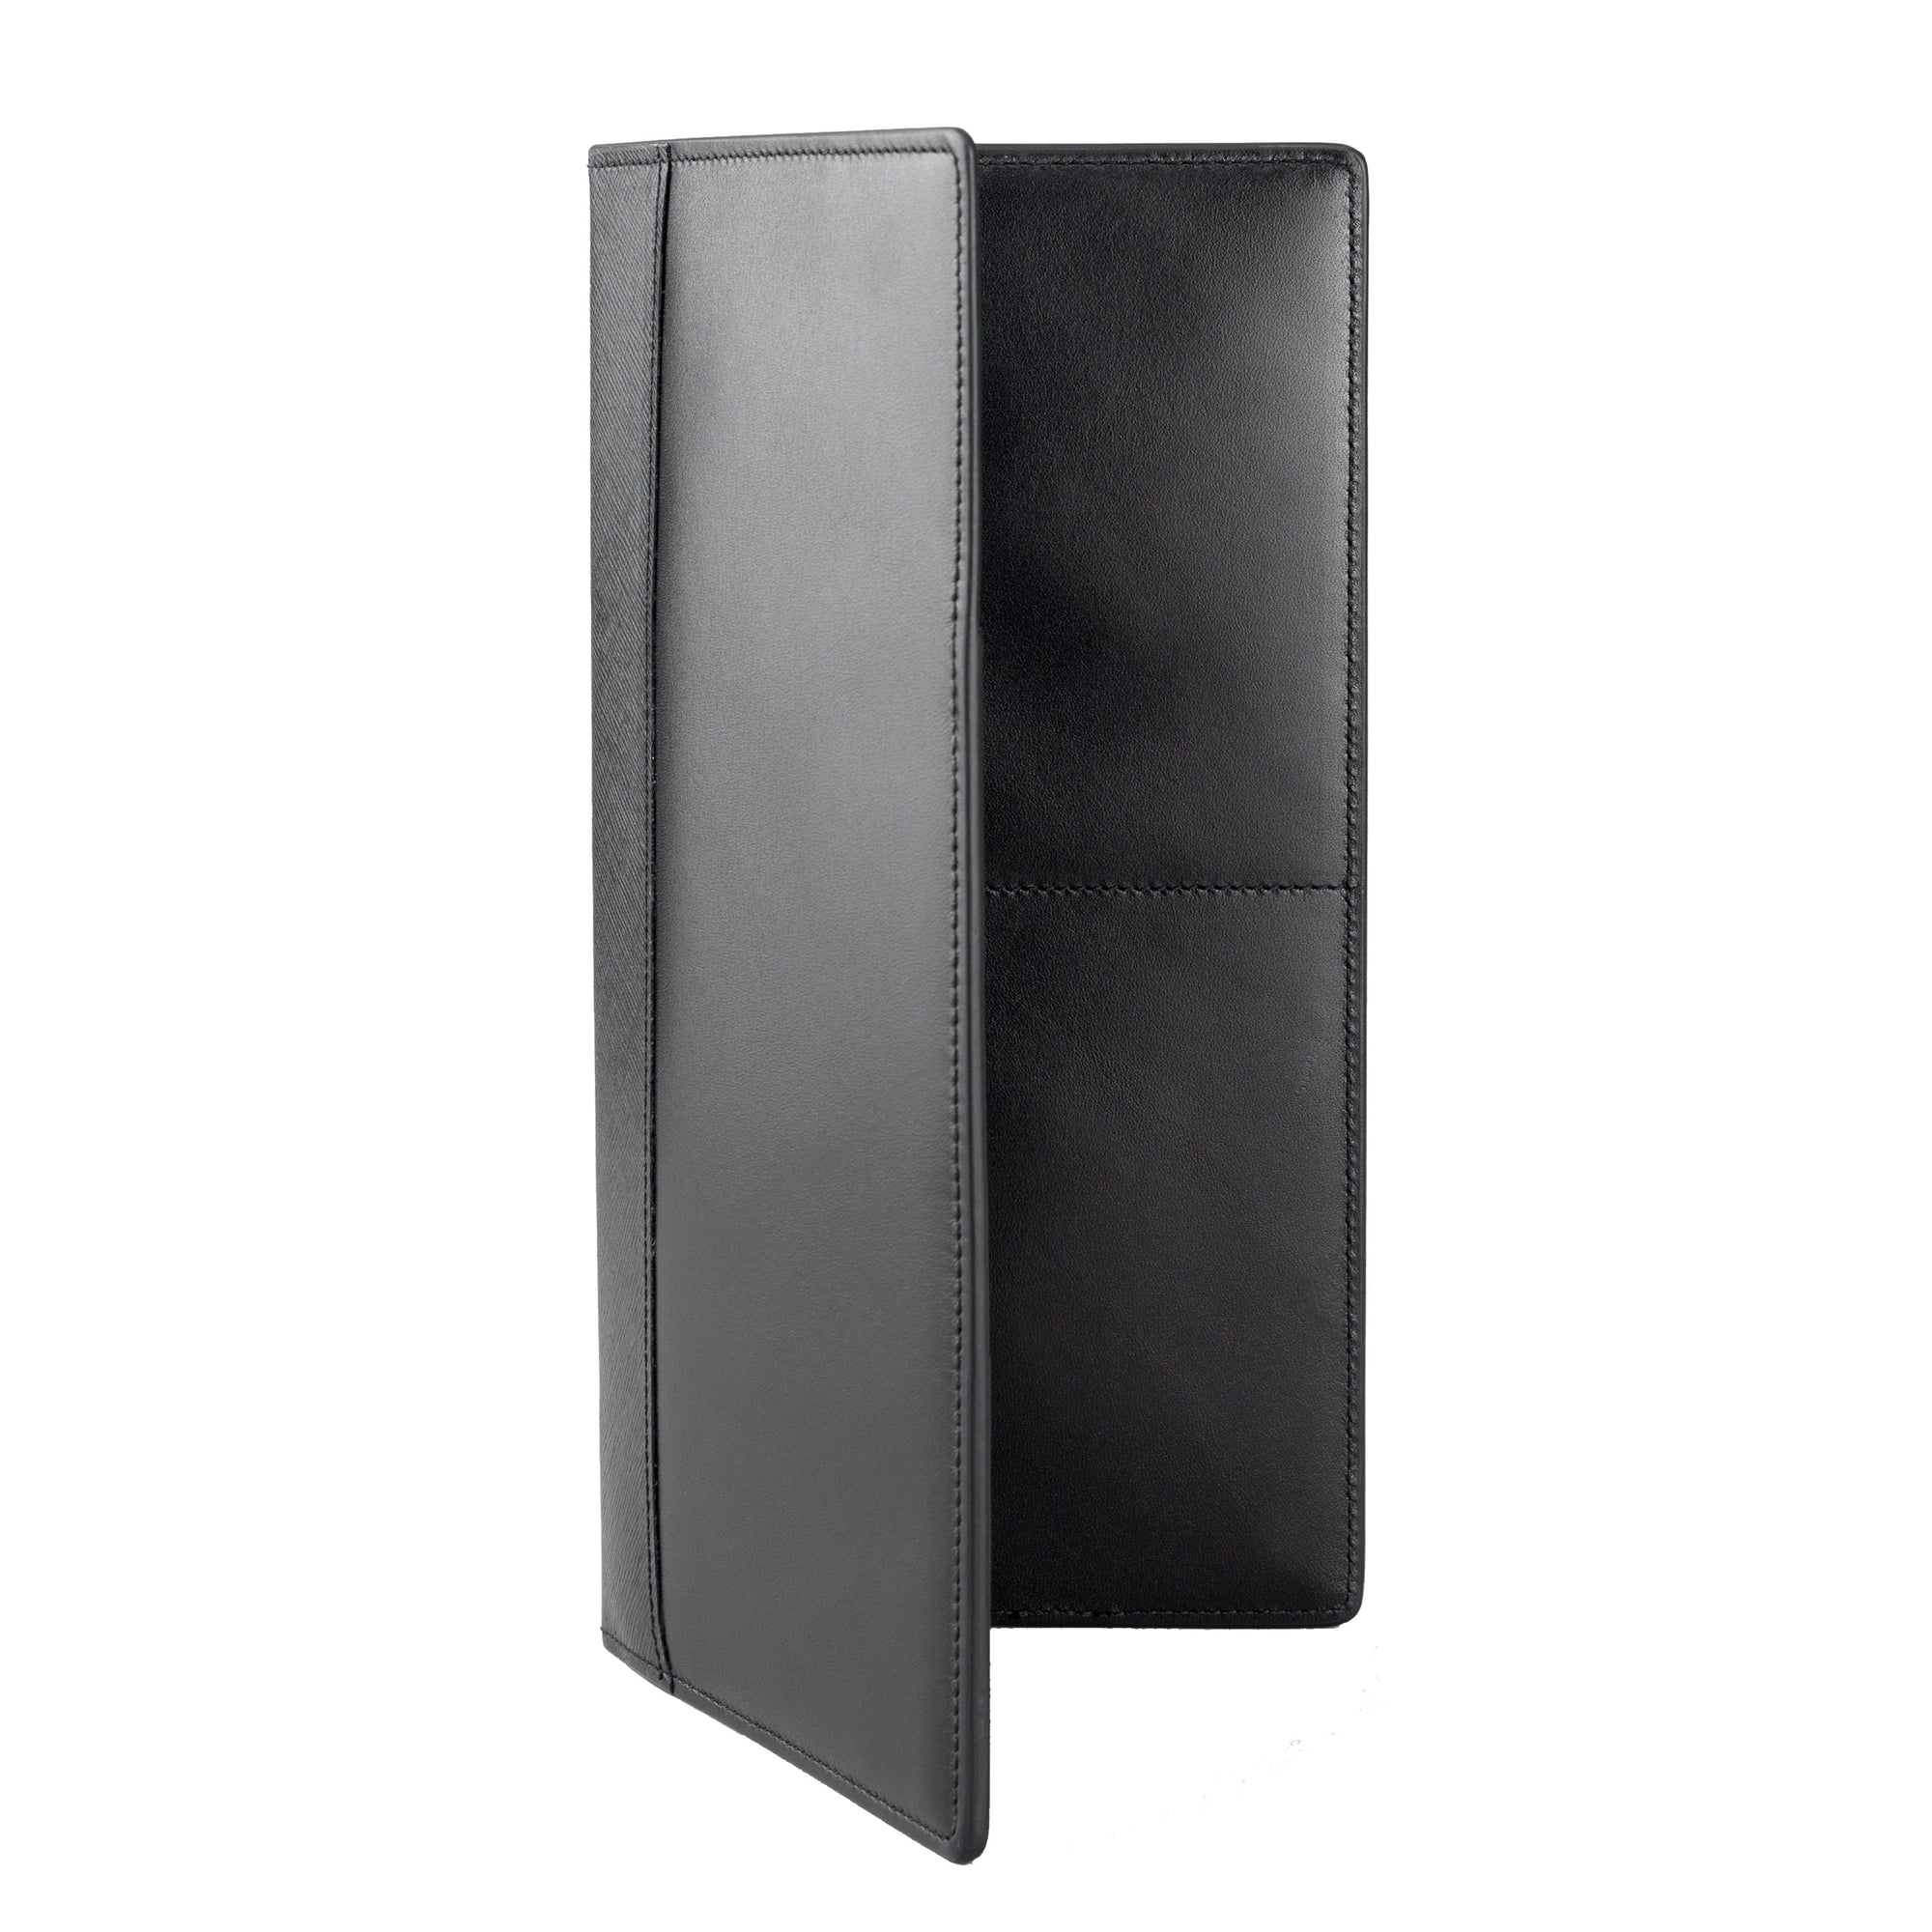 007 Black Leather Travel Wallet By Globe-Trotter - 007STORE